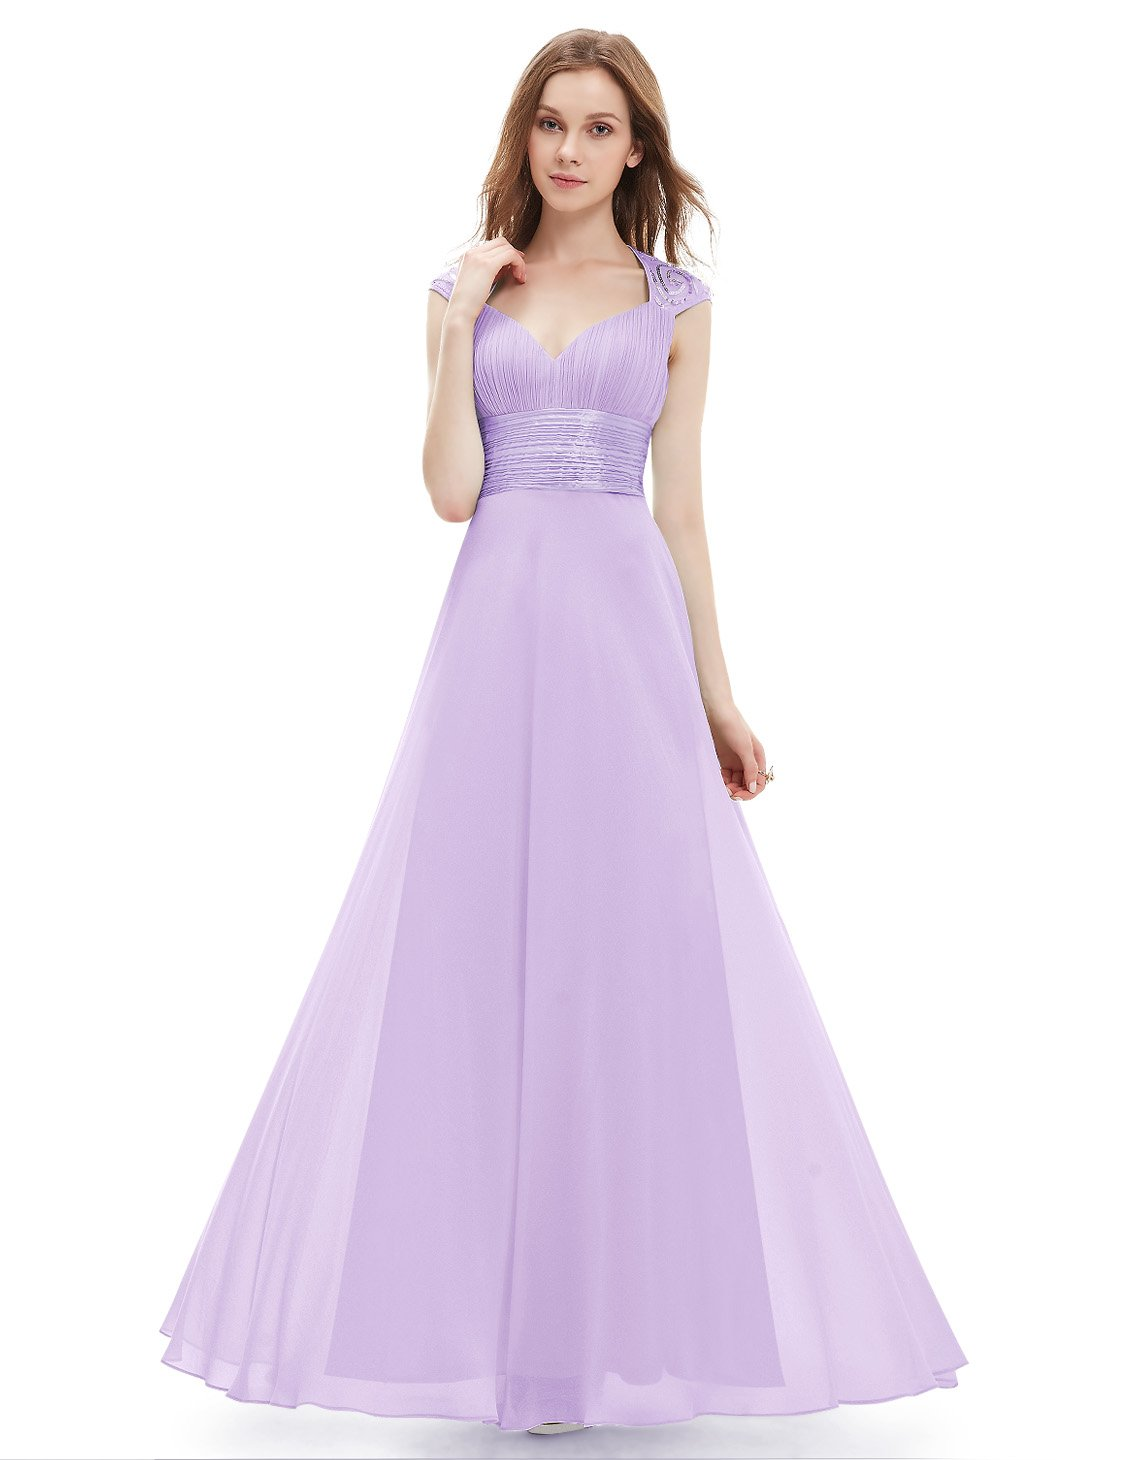 Ever-Pretty Womens Empire Waist Formal Long Military Ball Gown 12 US Light Purple by Ever-Pretty (Image #3)